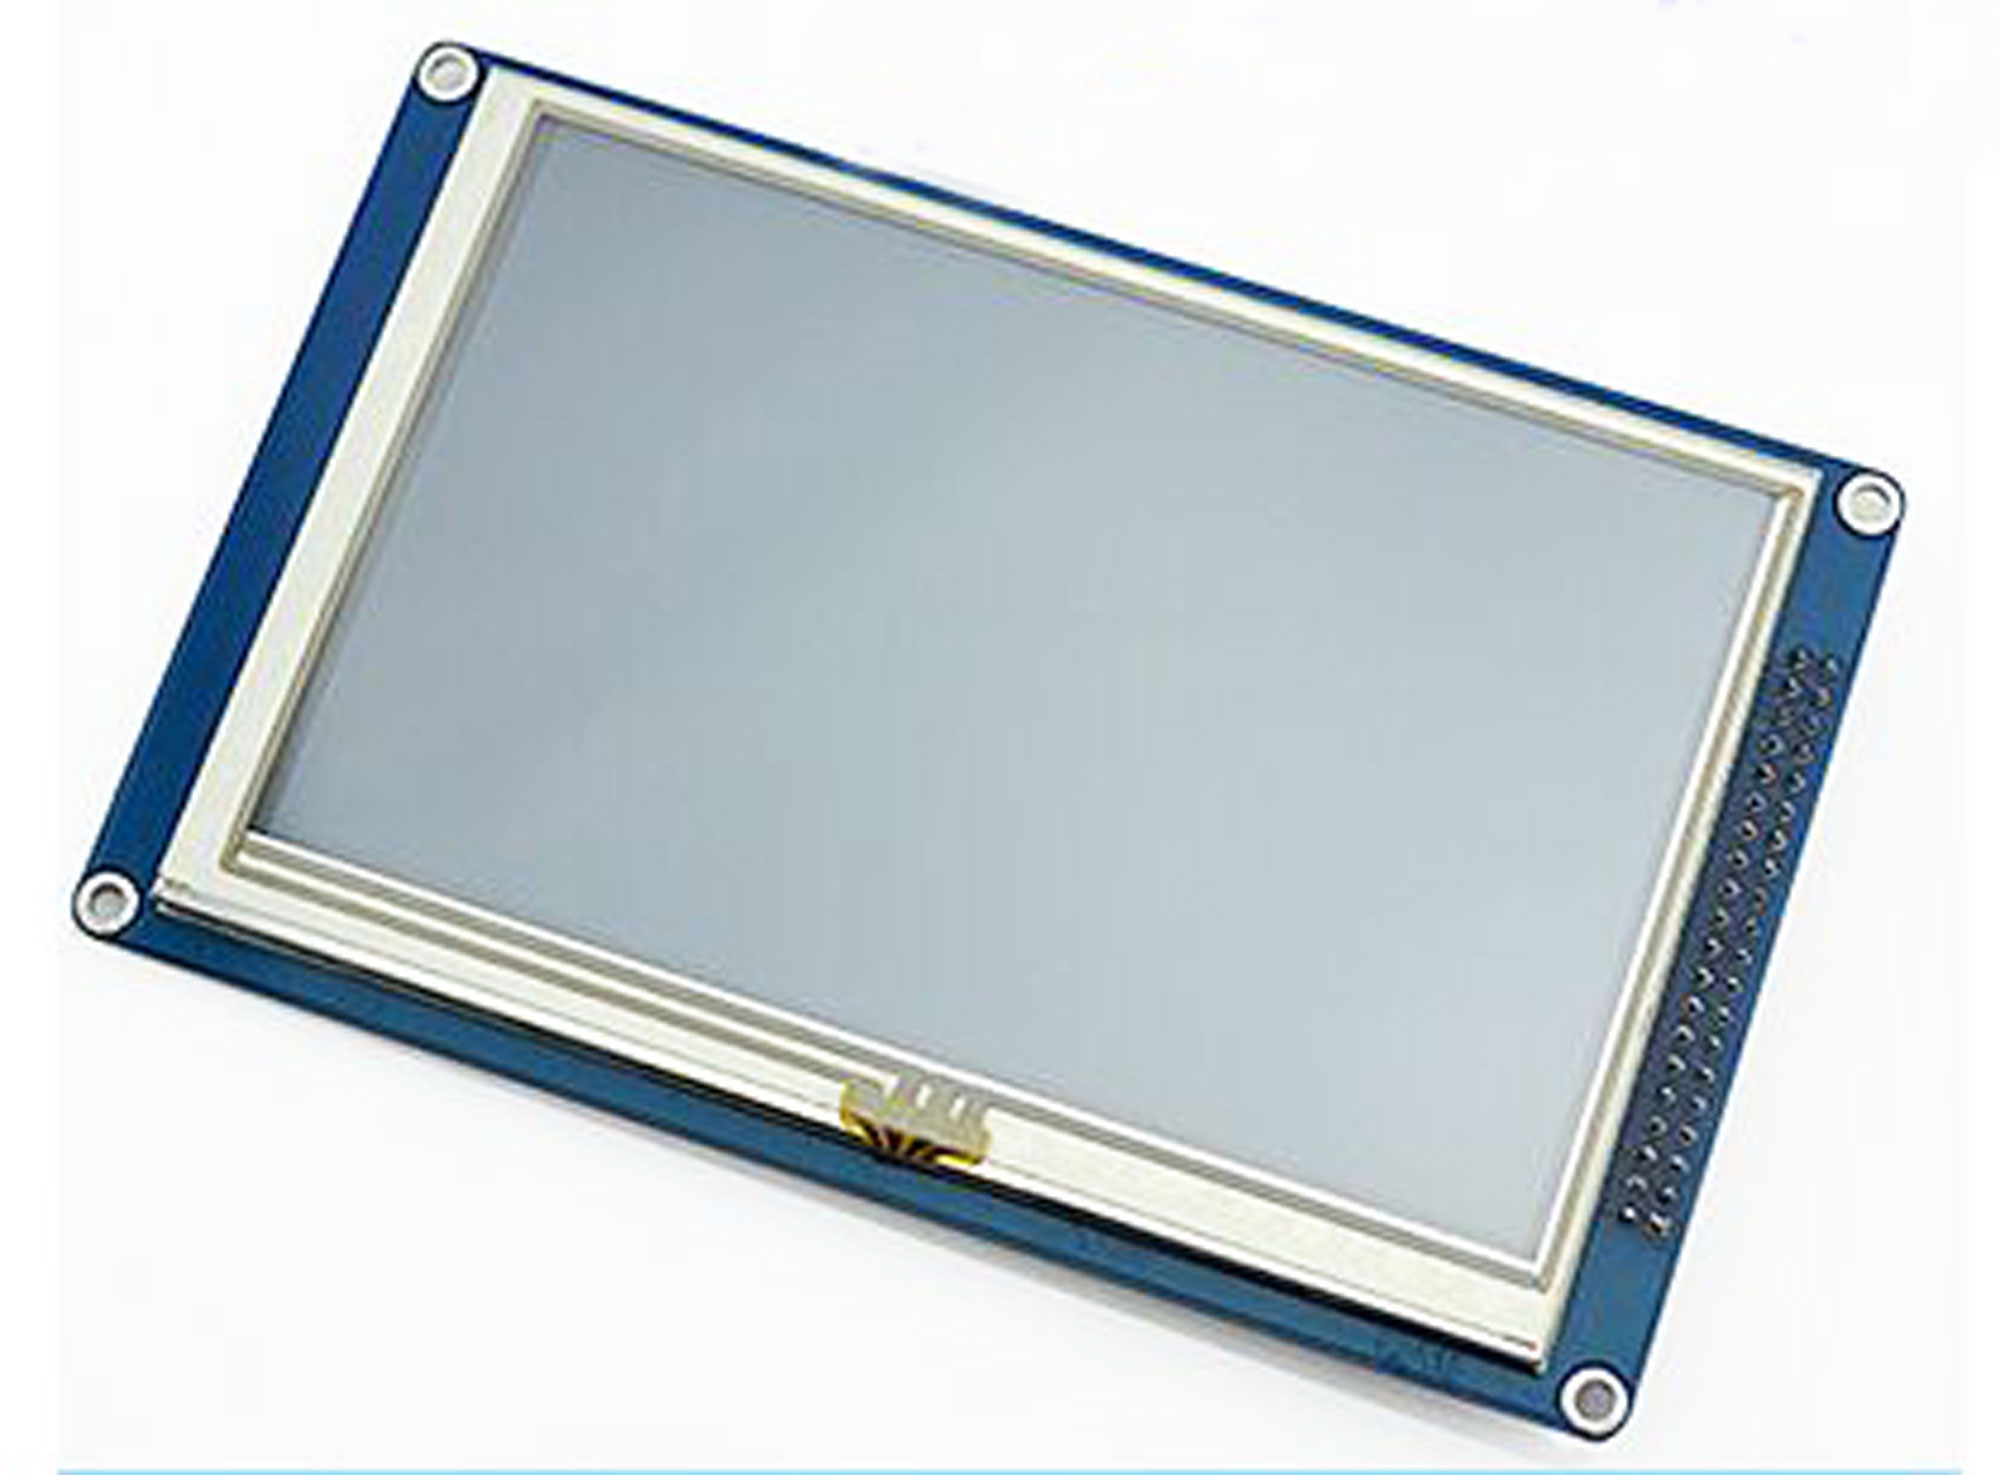 5.0 inch 5.0 TFT LCD module Display SSD1963 with touch panel SD card 800X4805.0 inch 5.0 TFT LCD module Display SSD1963 with touch panel SD card 800X480